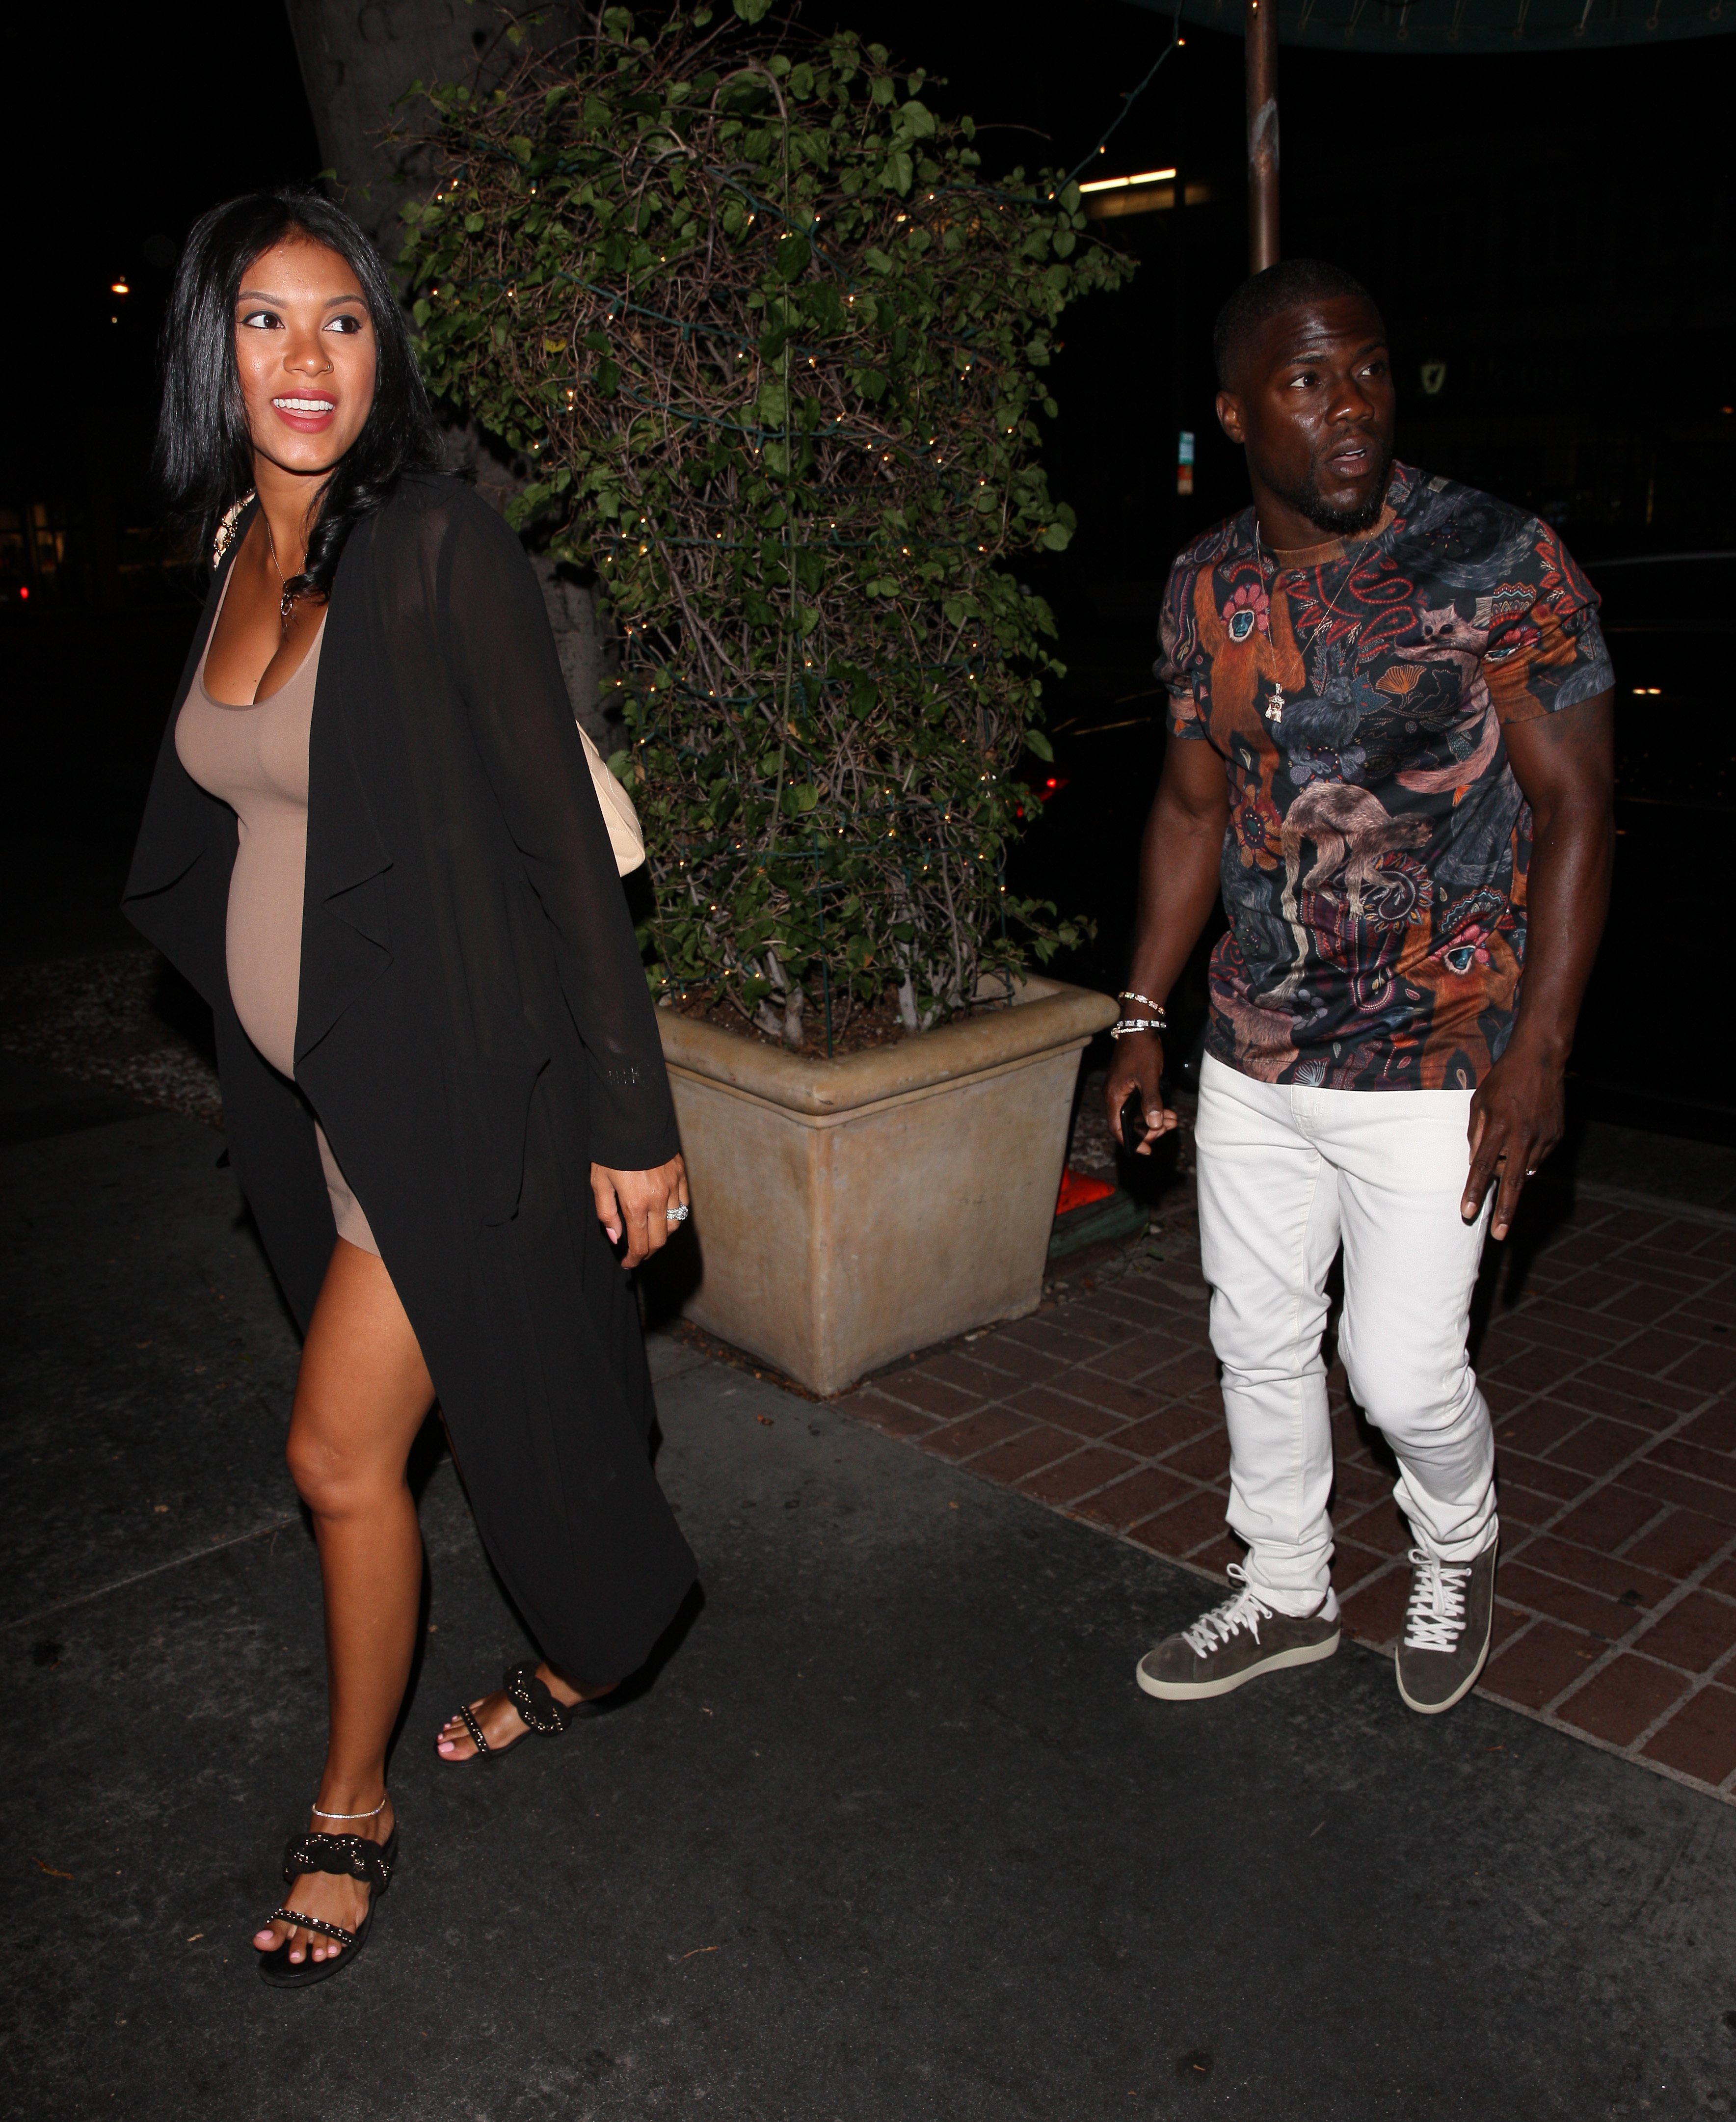 Kevin Hart and his pregnant wife Eniko Parrish grab dinner at Madeo Restaurant in West Hollywood on Aug. 20, 2017.